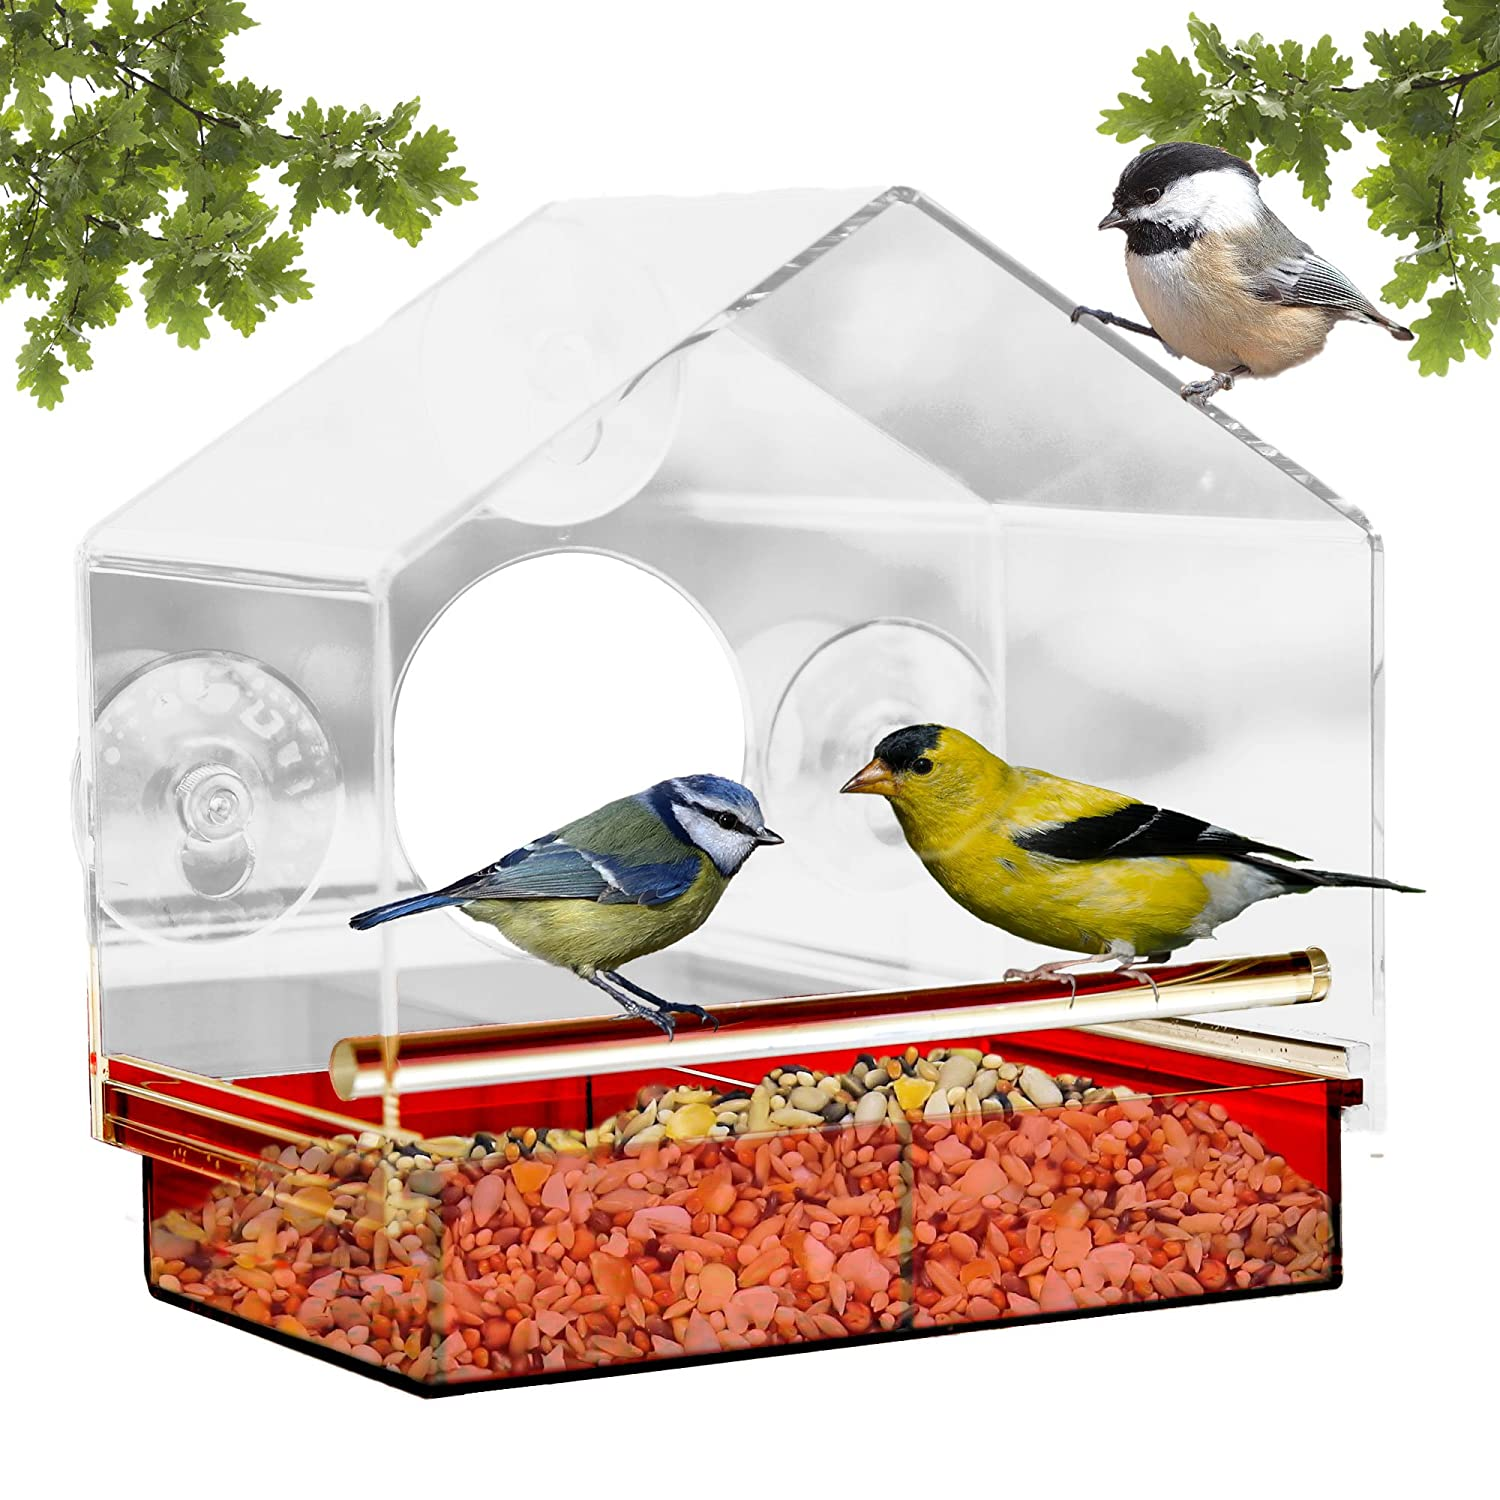 Window Bird Feeder With Strong Suction Cups Attracts Wild Birds, See Through  Design And Colored Removable Tray, 3 EXTRA Suction Cups, Squirrel Proof    100% ...